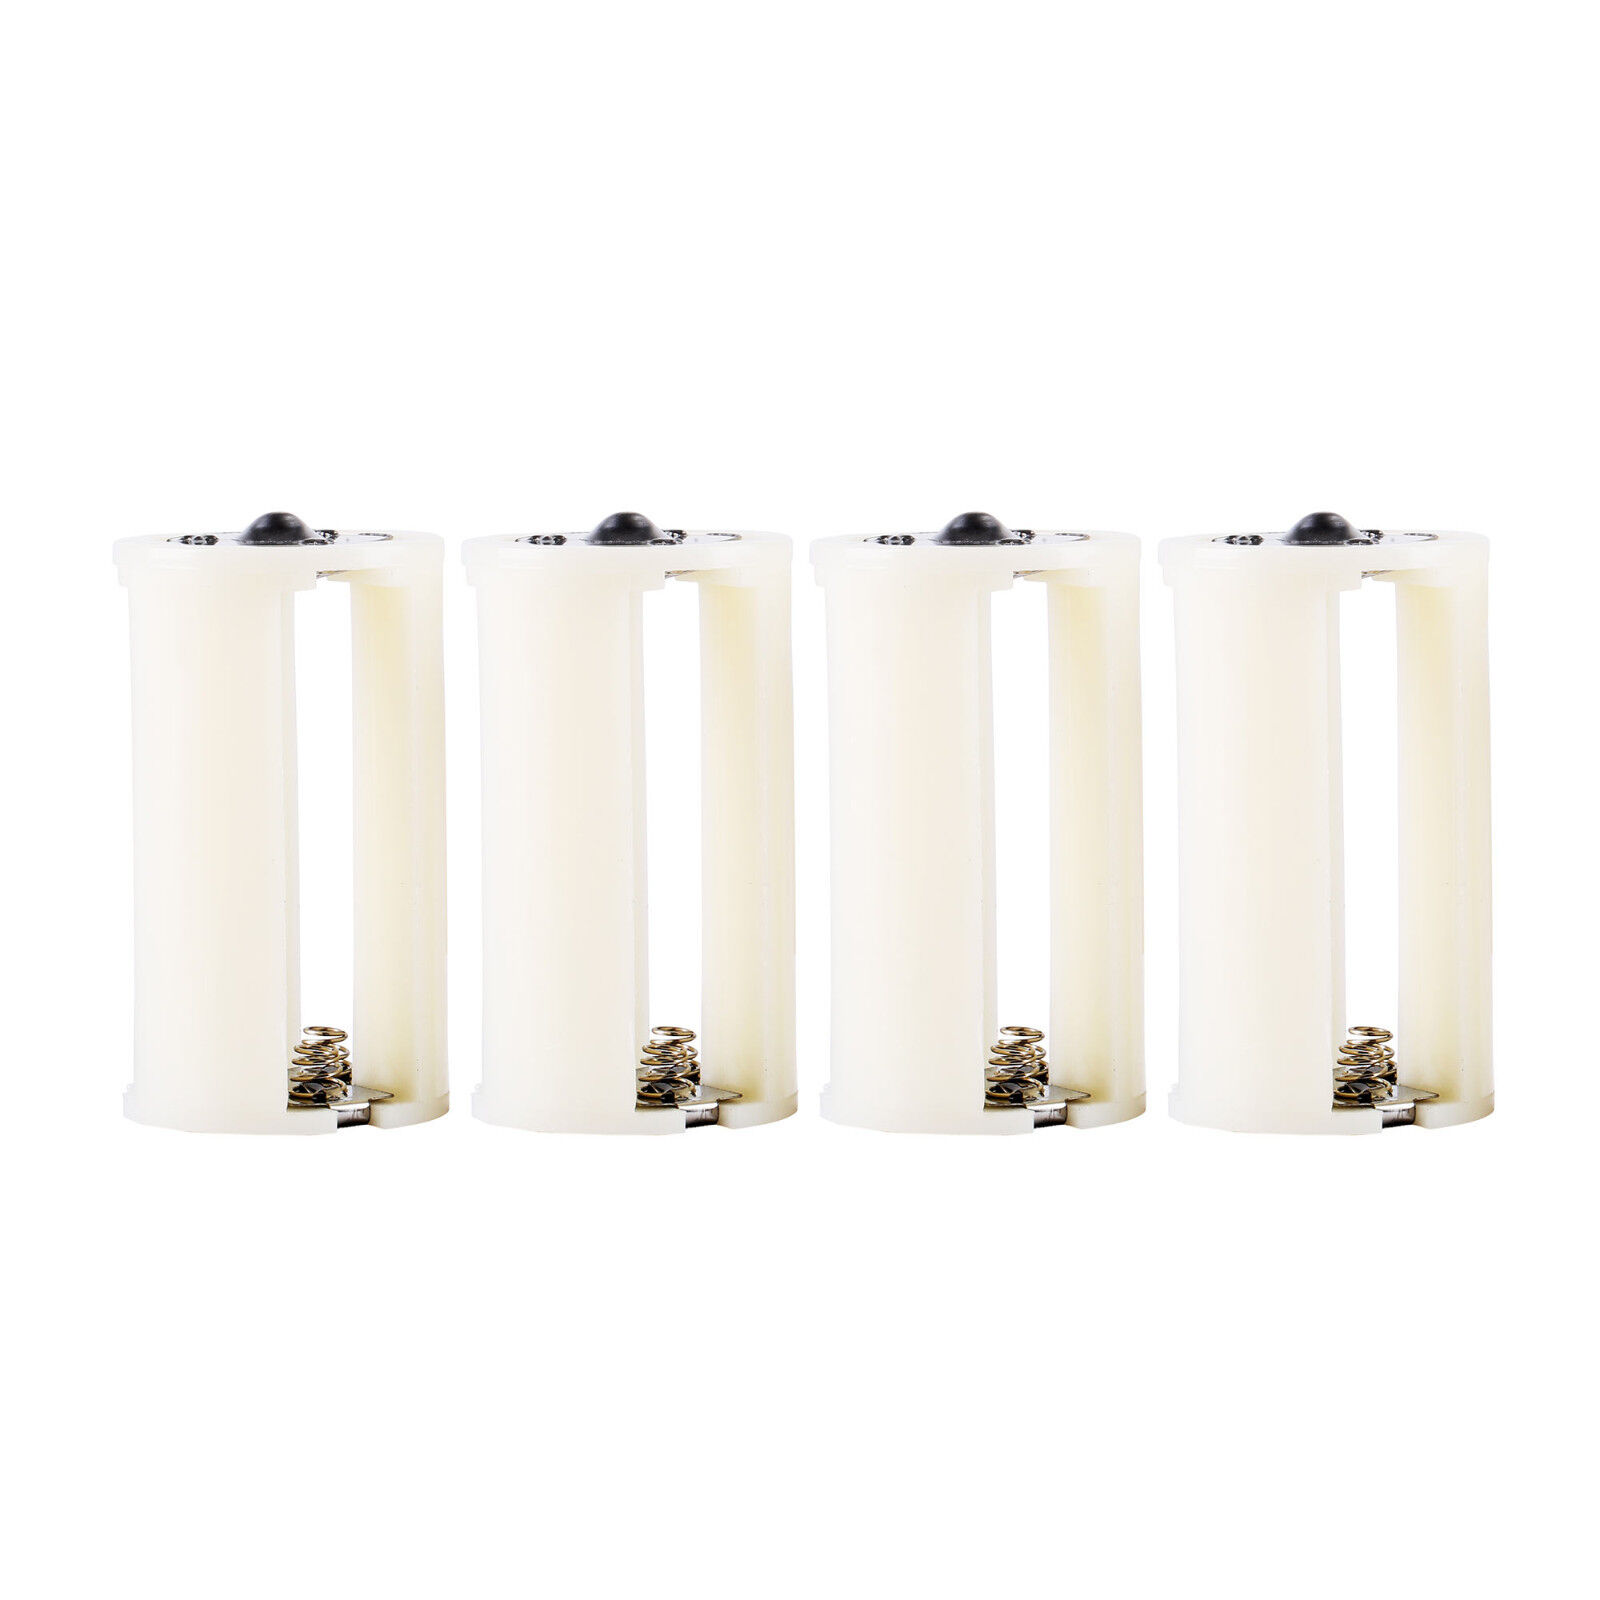 AA to Size D Battery Adapters Converter Cases Plastic Parallel White 8 Pcs Battery Converters